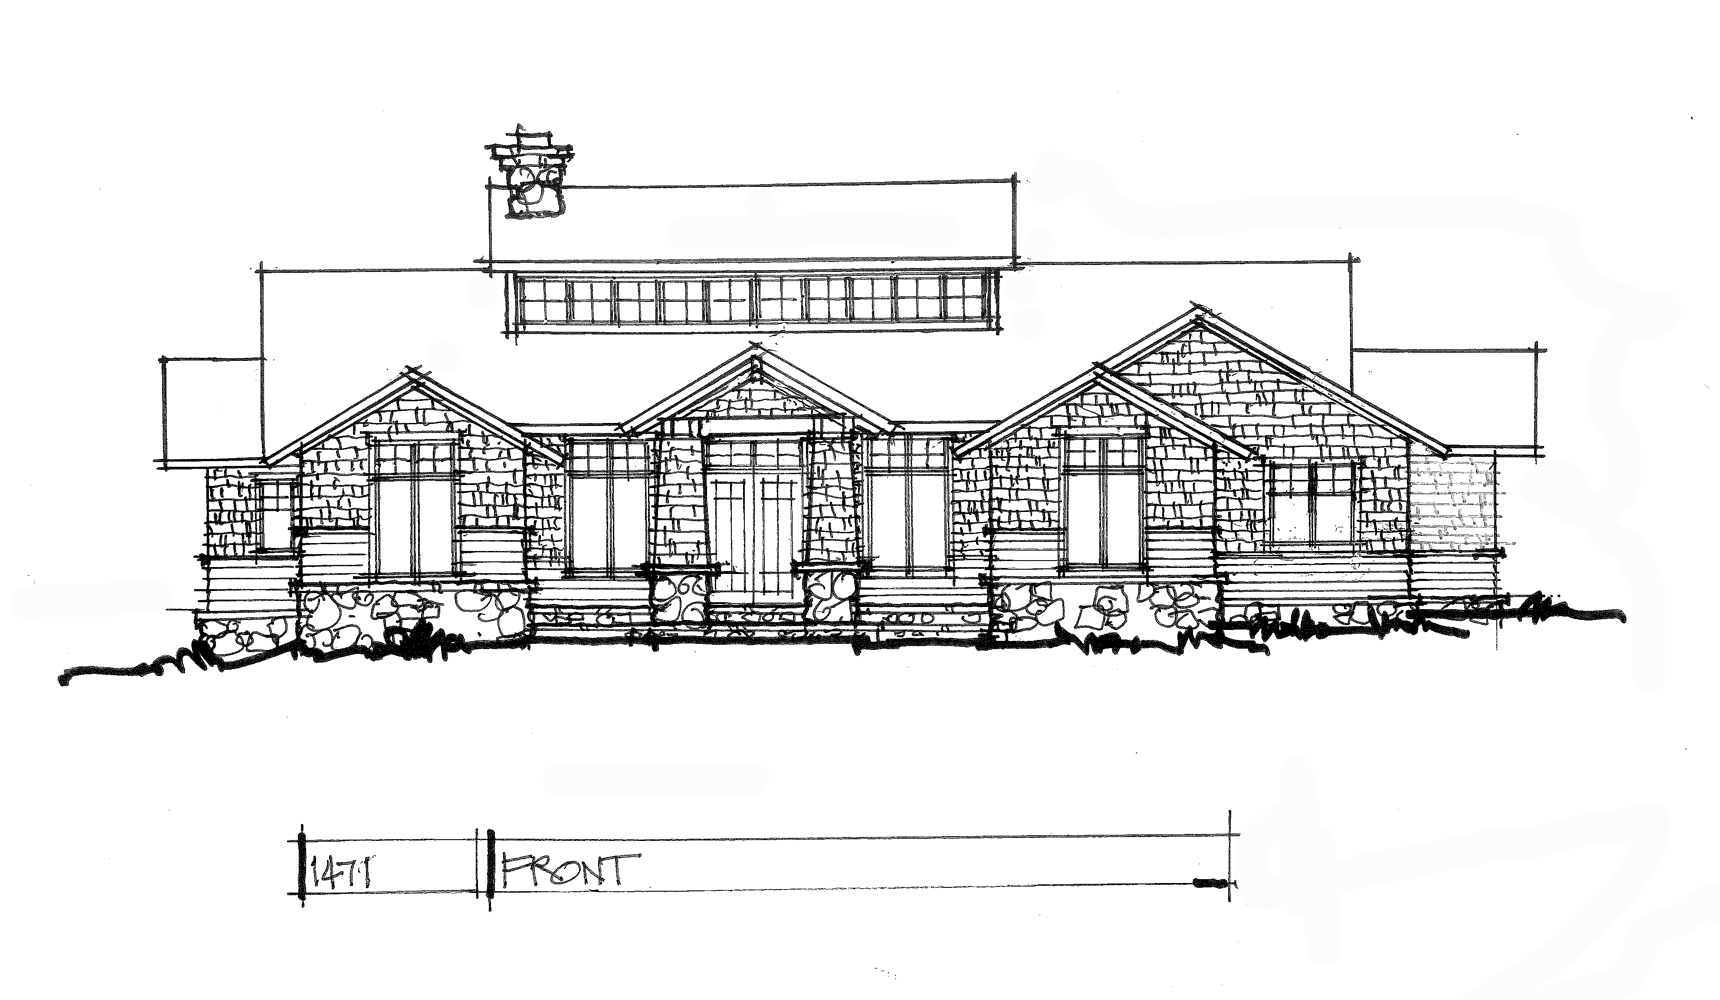 Conceptual house plan 1471 is a modern ranch.